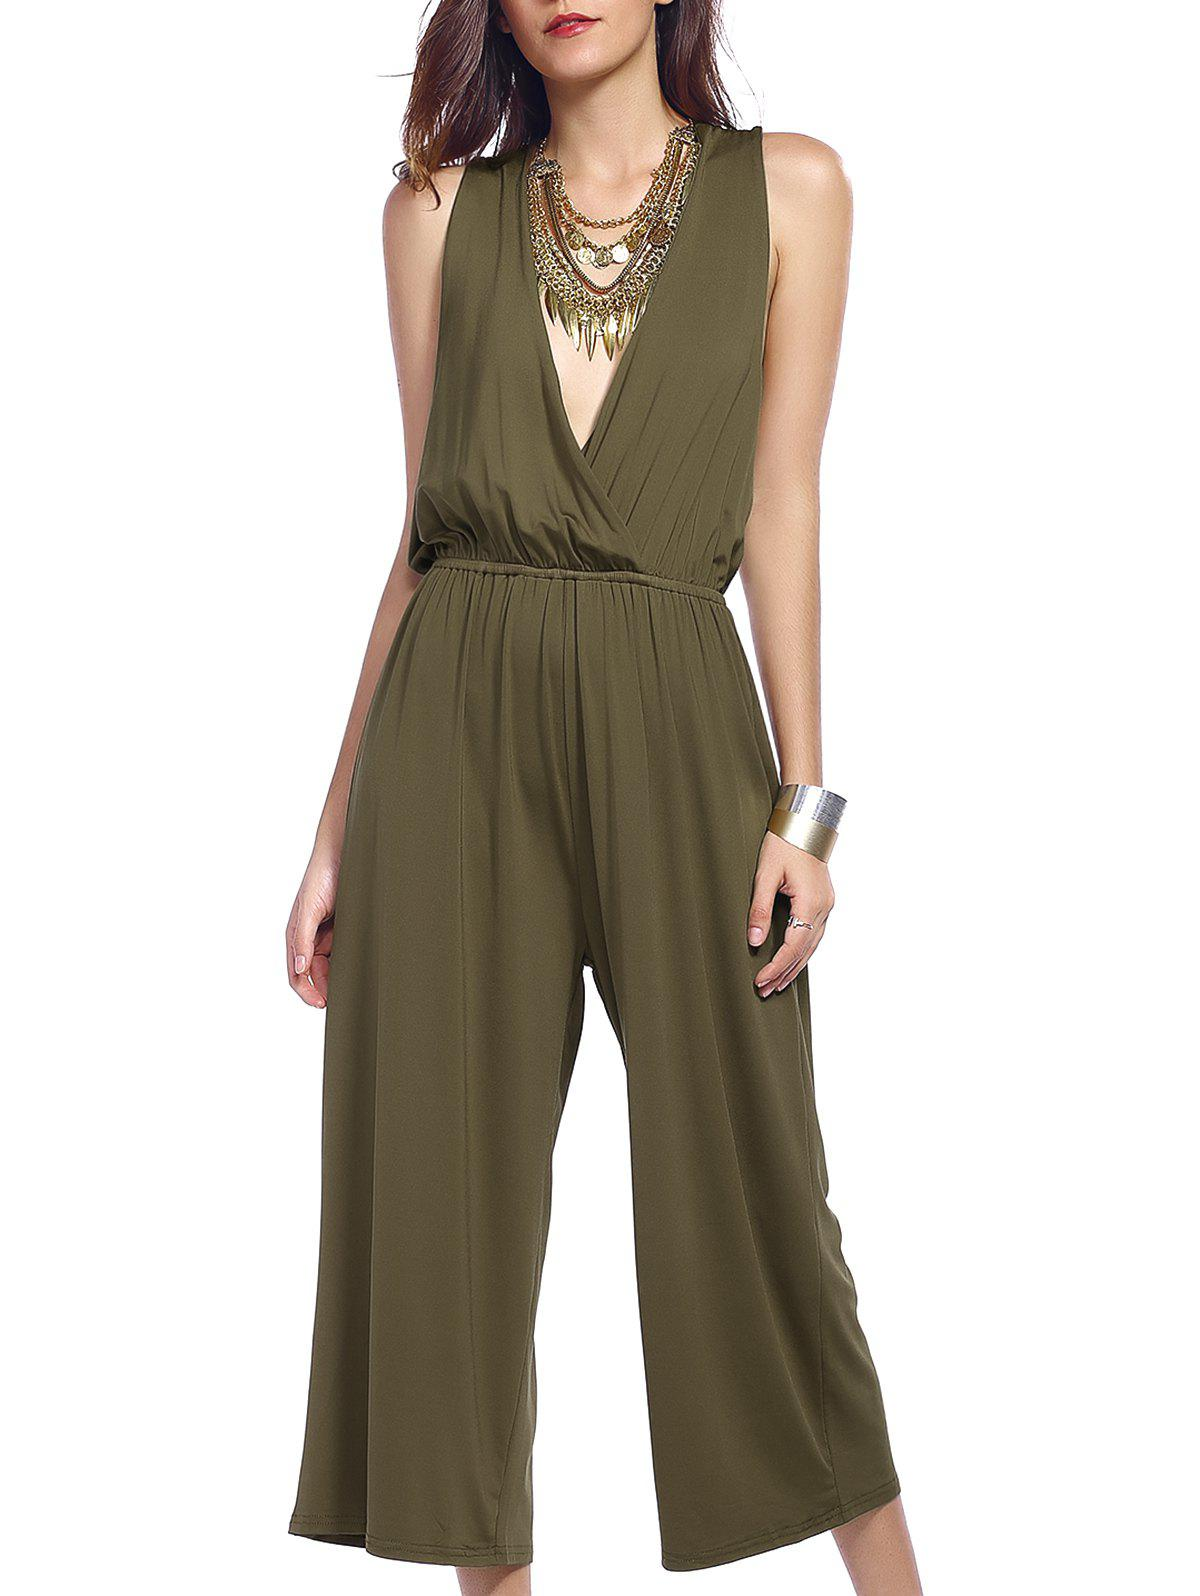 Surplice Criss Cross Stylish Wide Leg Women's Jumpsuit - ARMY GREEN 2XL